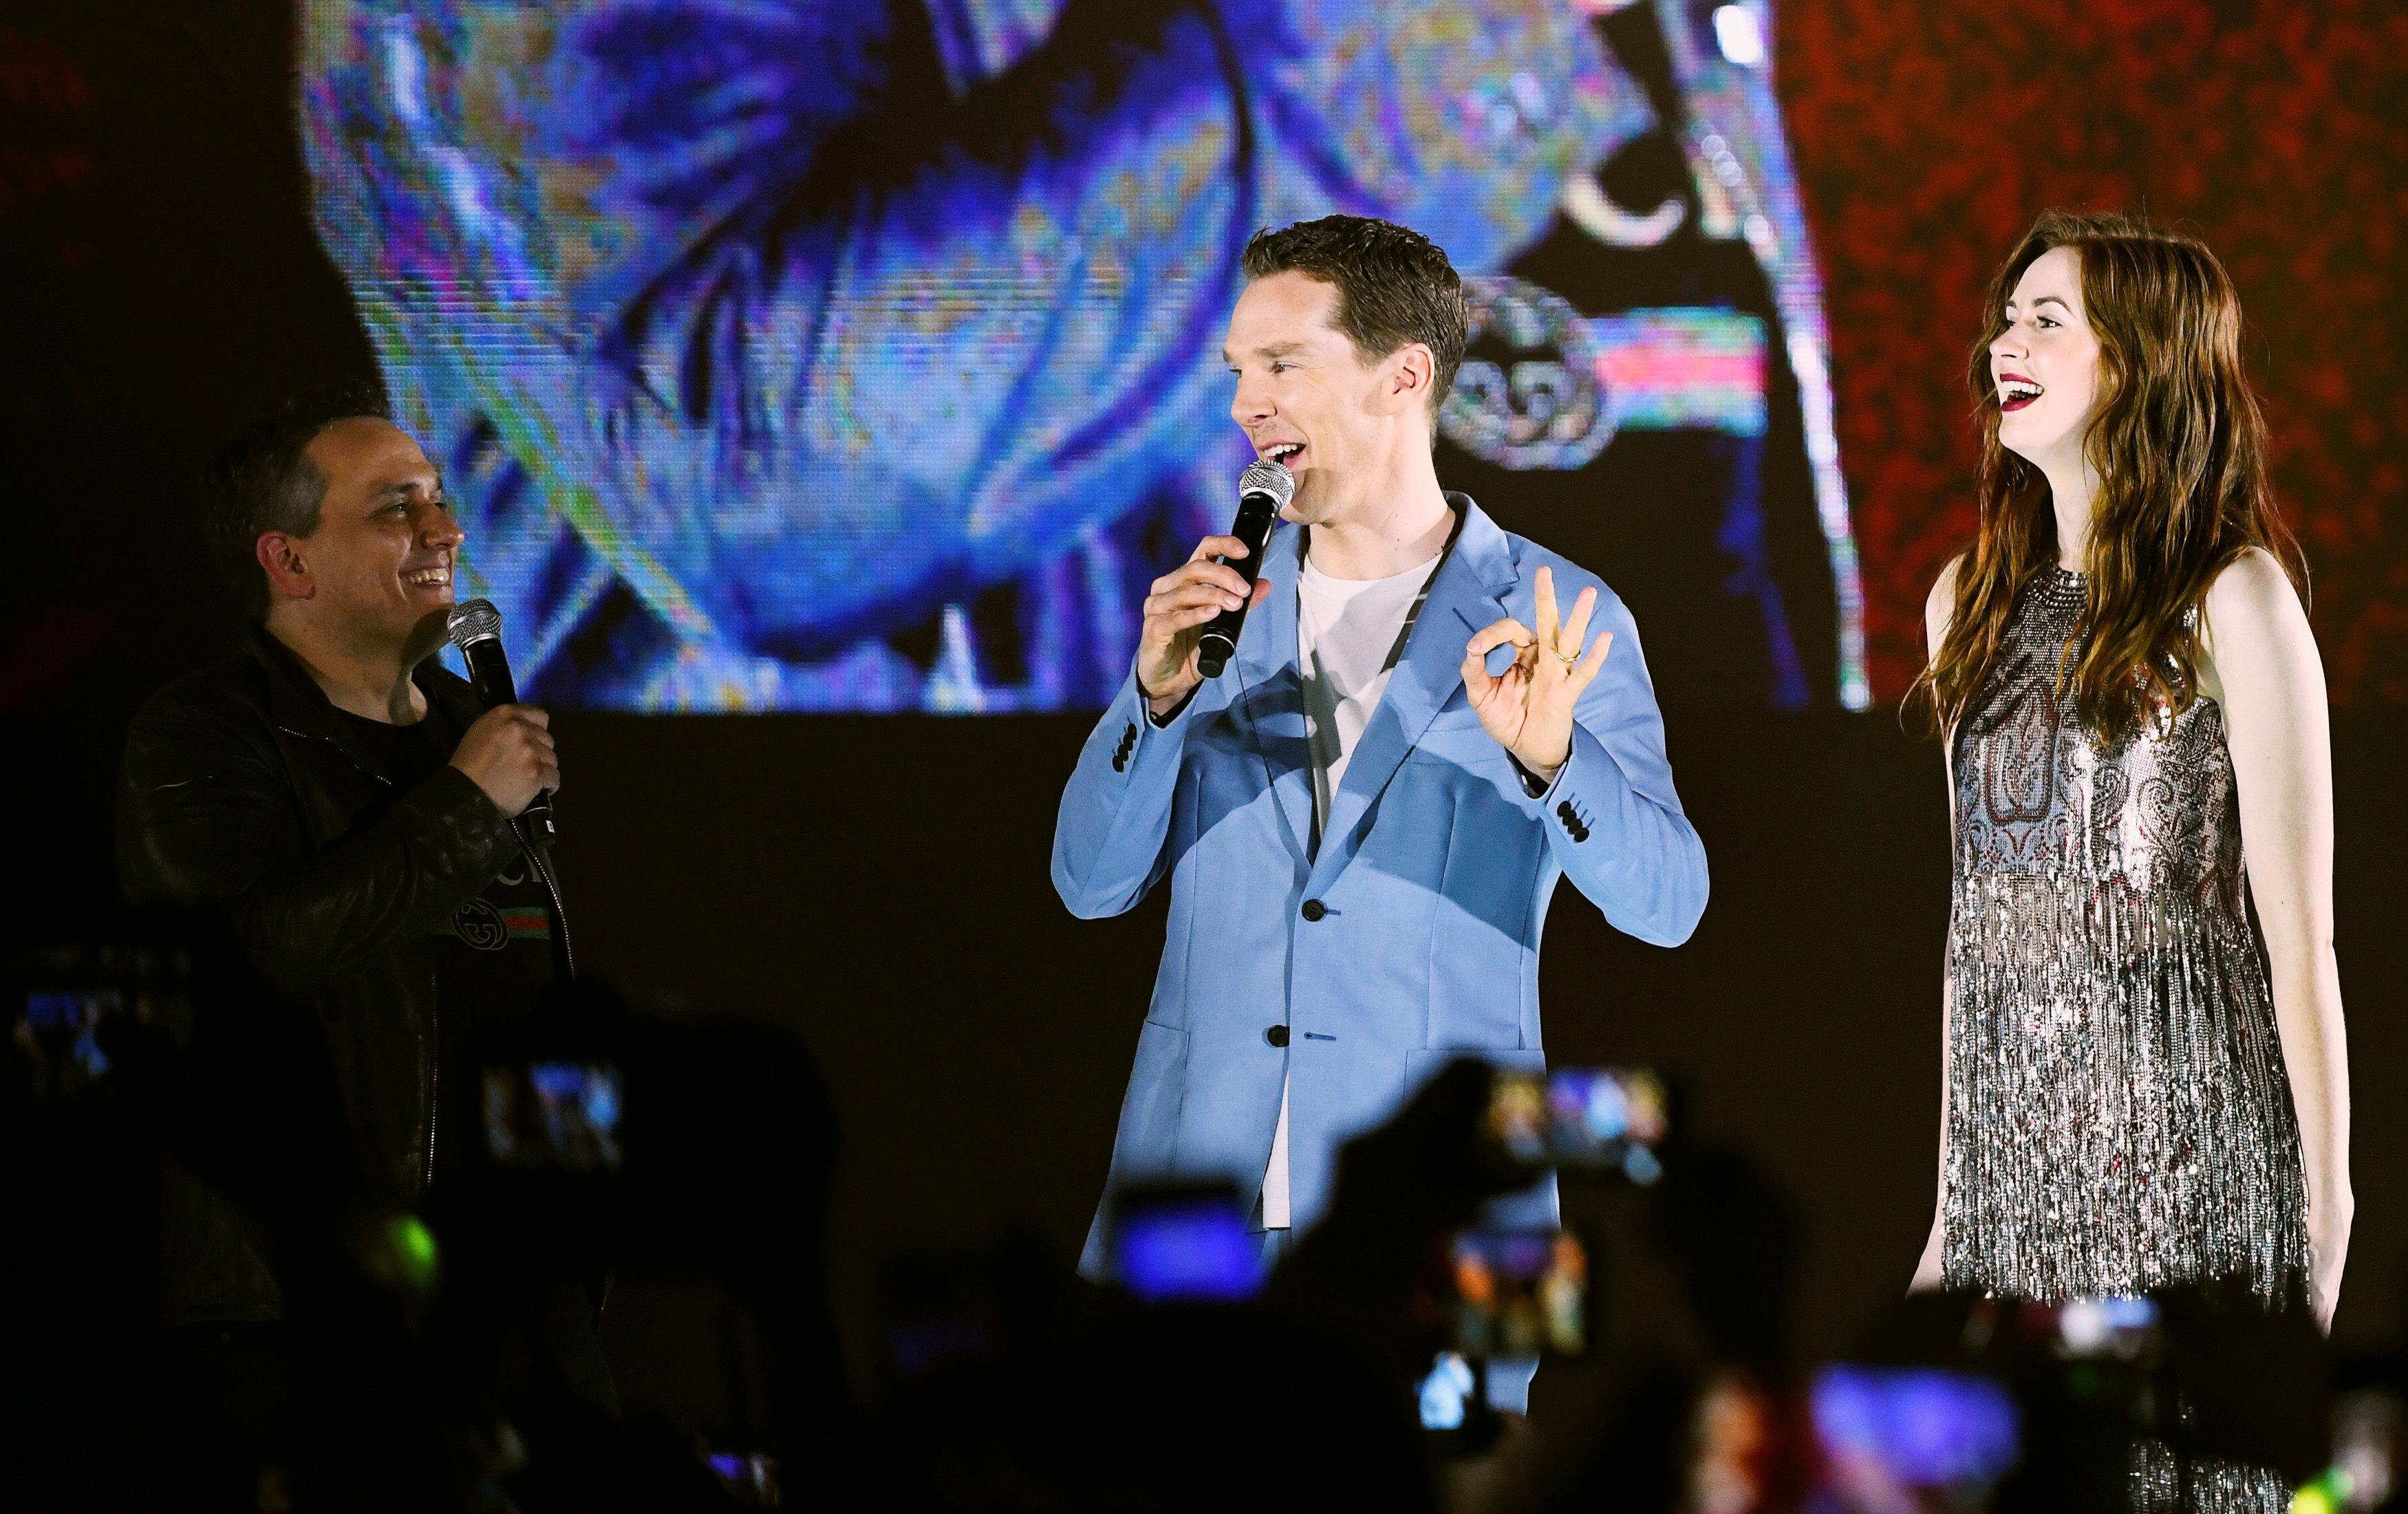 Cast member Benedict Cumberbatch talks with director Joe Russo as cast member Karen Gillan reacts at a fan event for Marvel Studio's Avengers: Infinity War movie, in Singapore April 16, 2018. Feline Lim